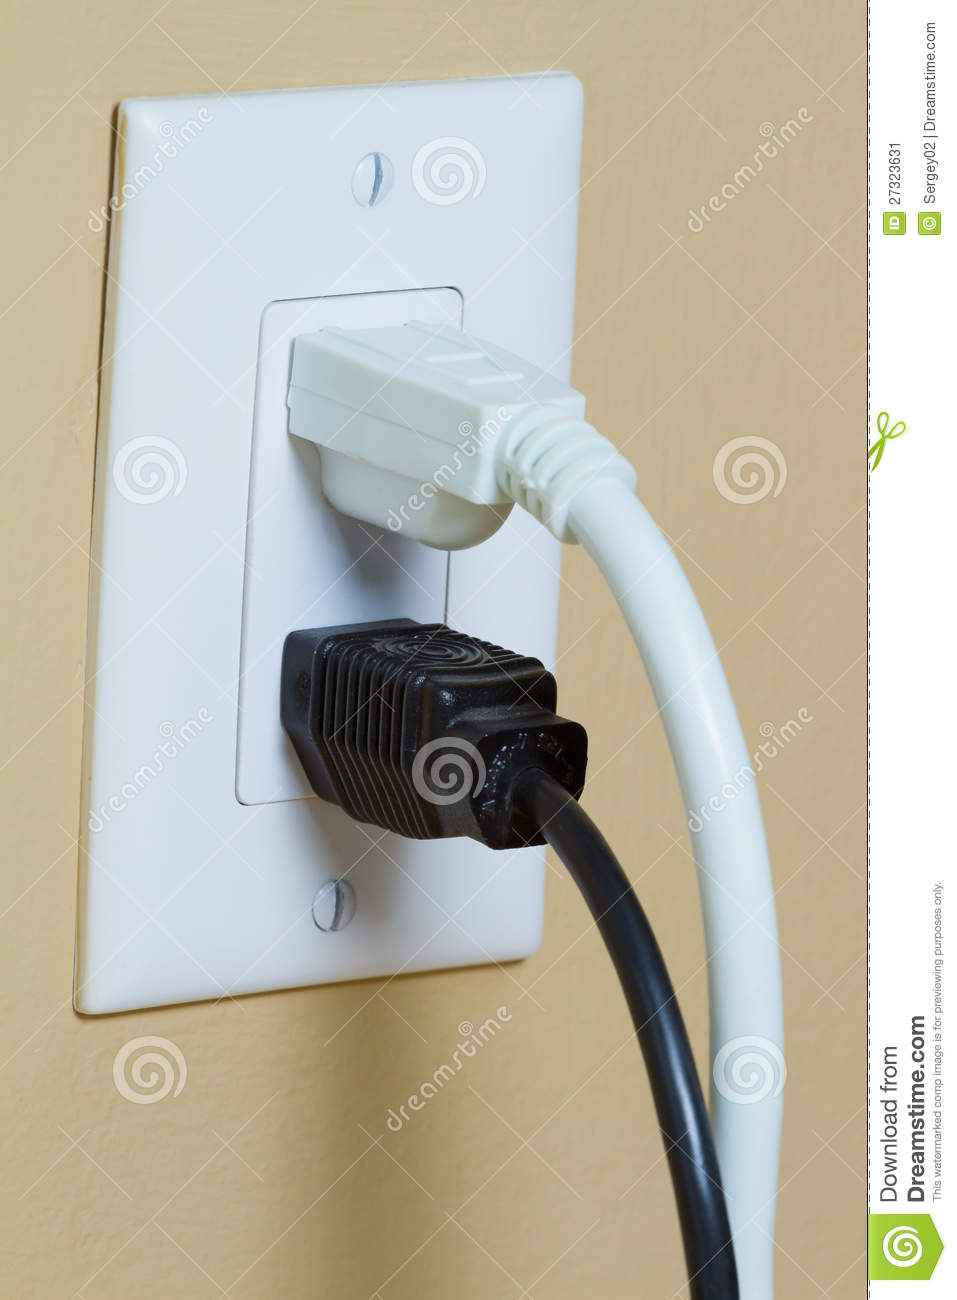 how to add a cable outlet to a wall